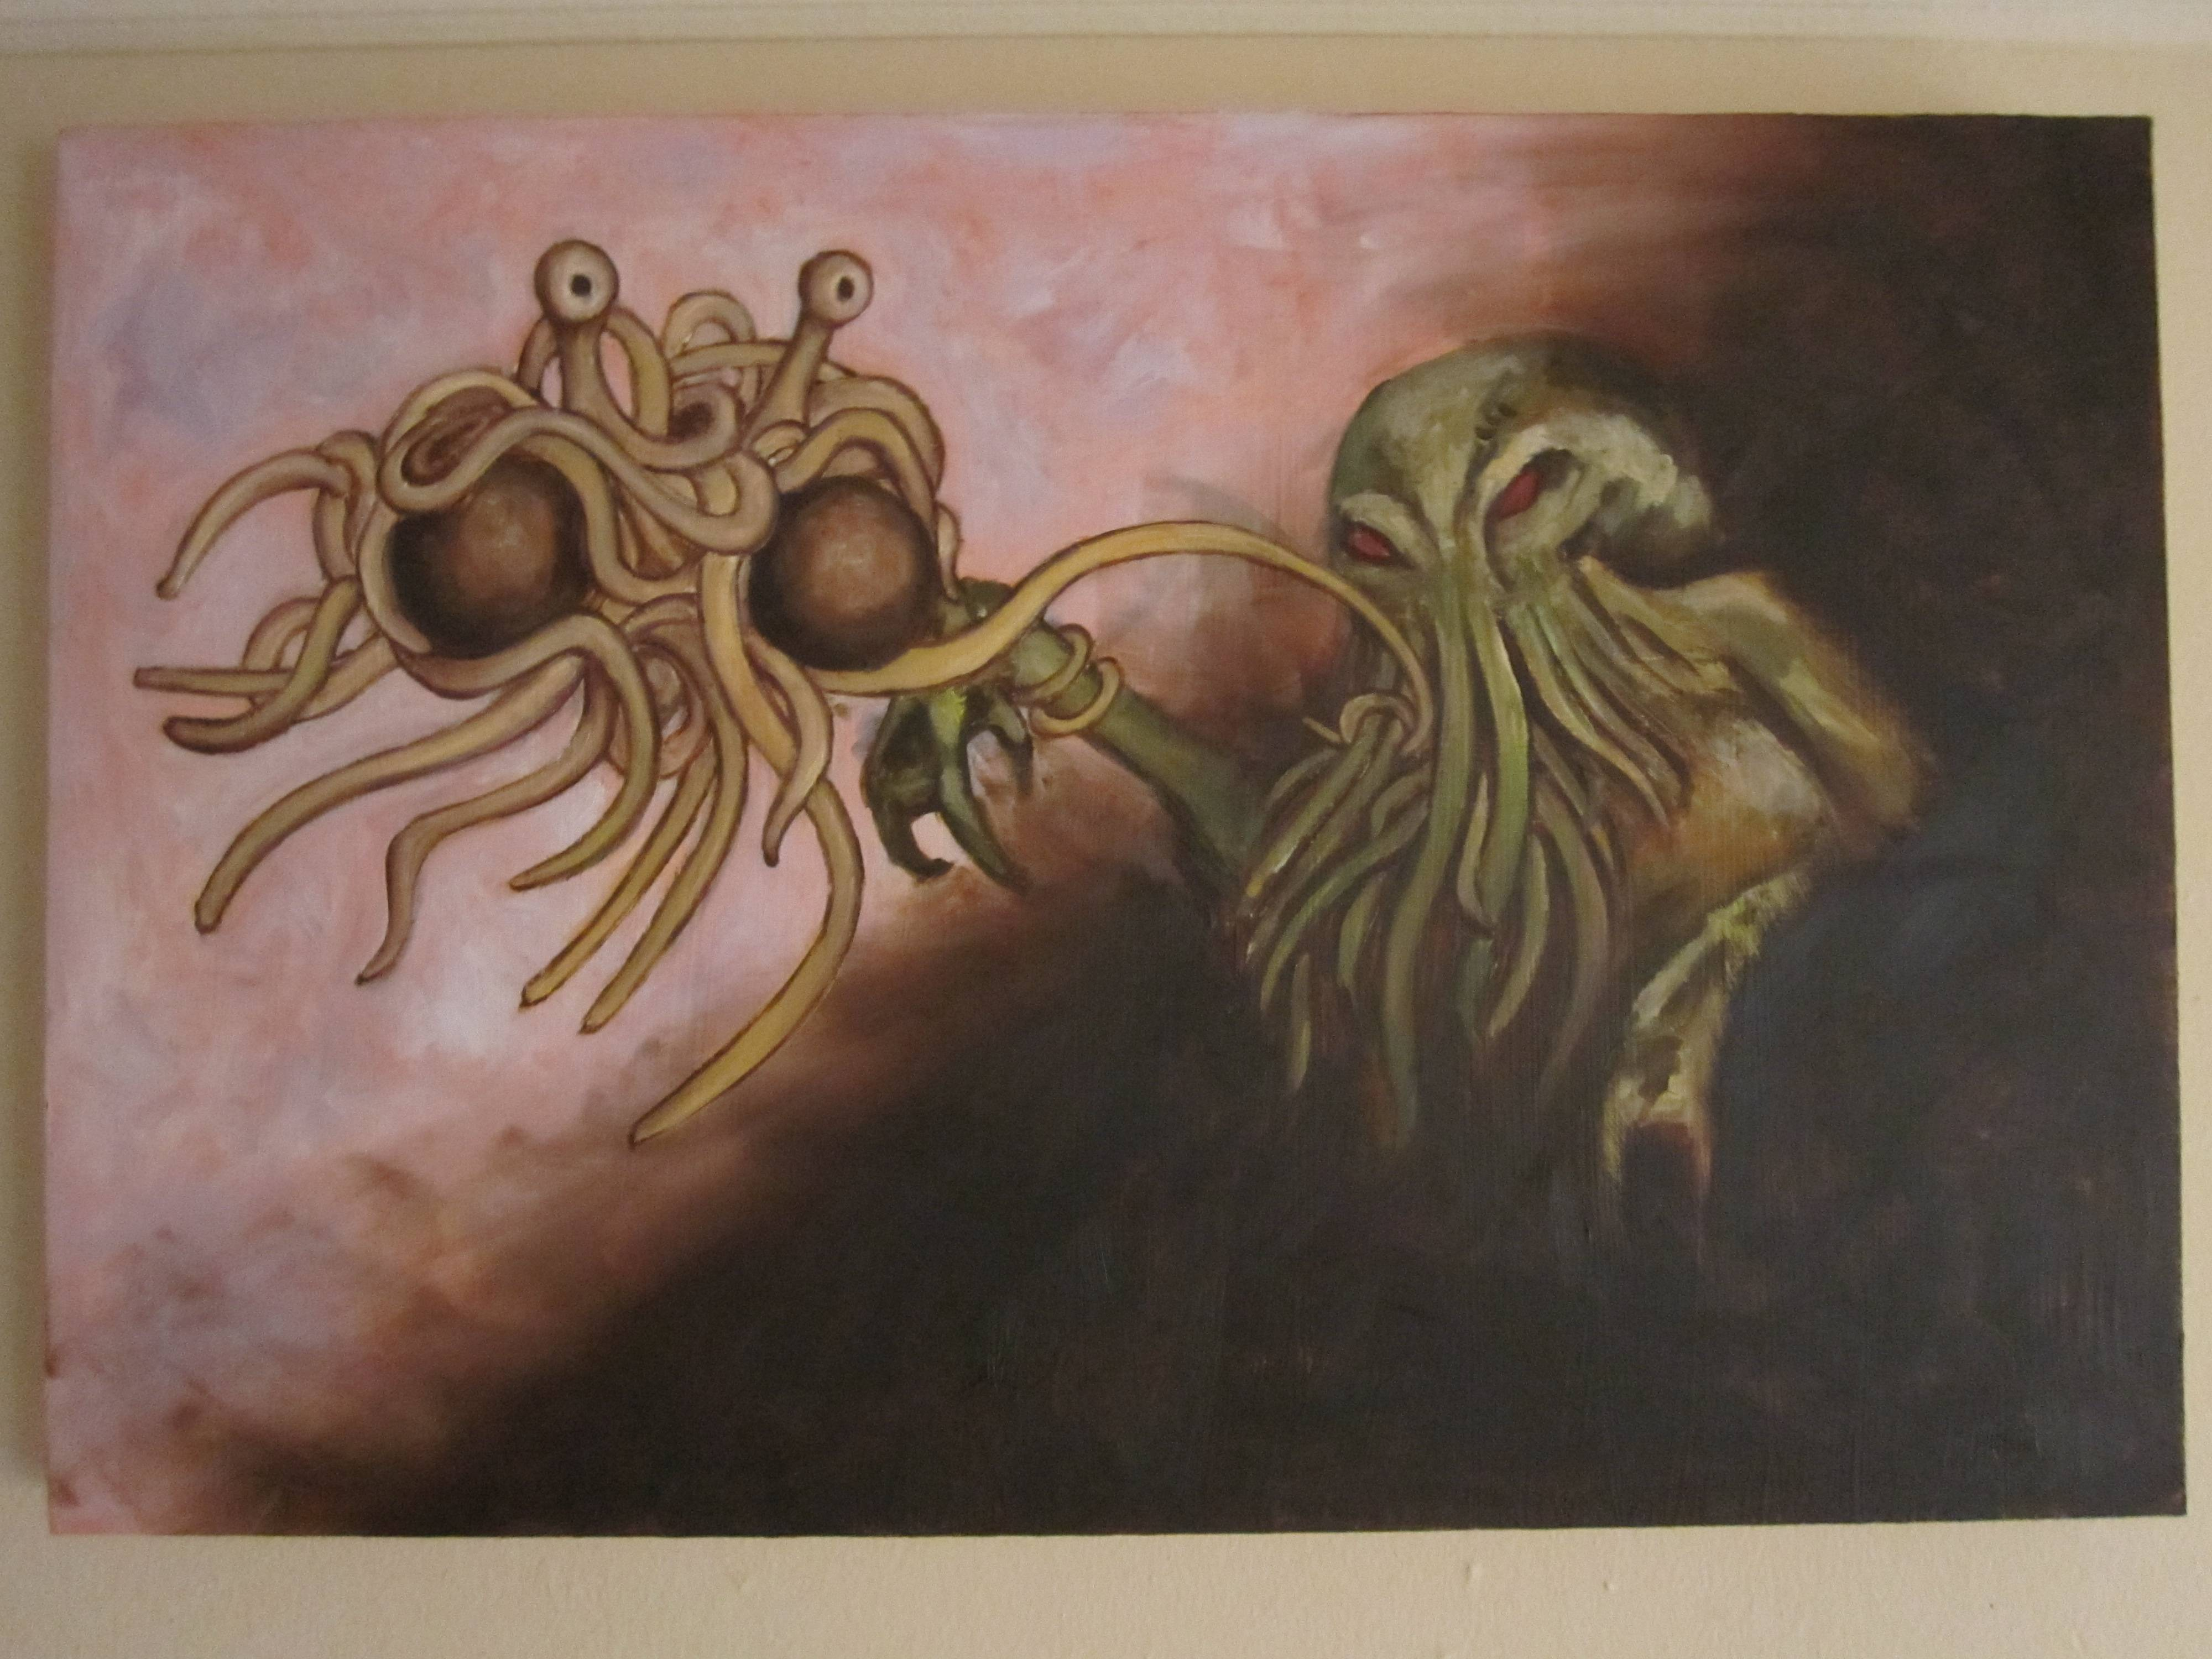 Flying Spaghetti Monster Wallpapers Wallpaper Cave